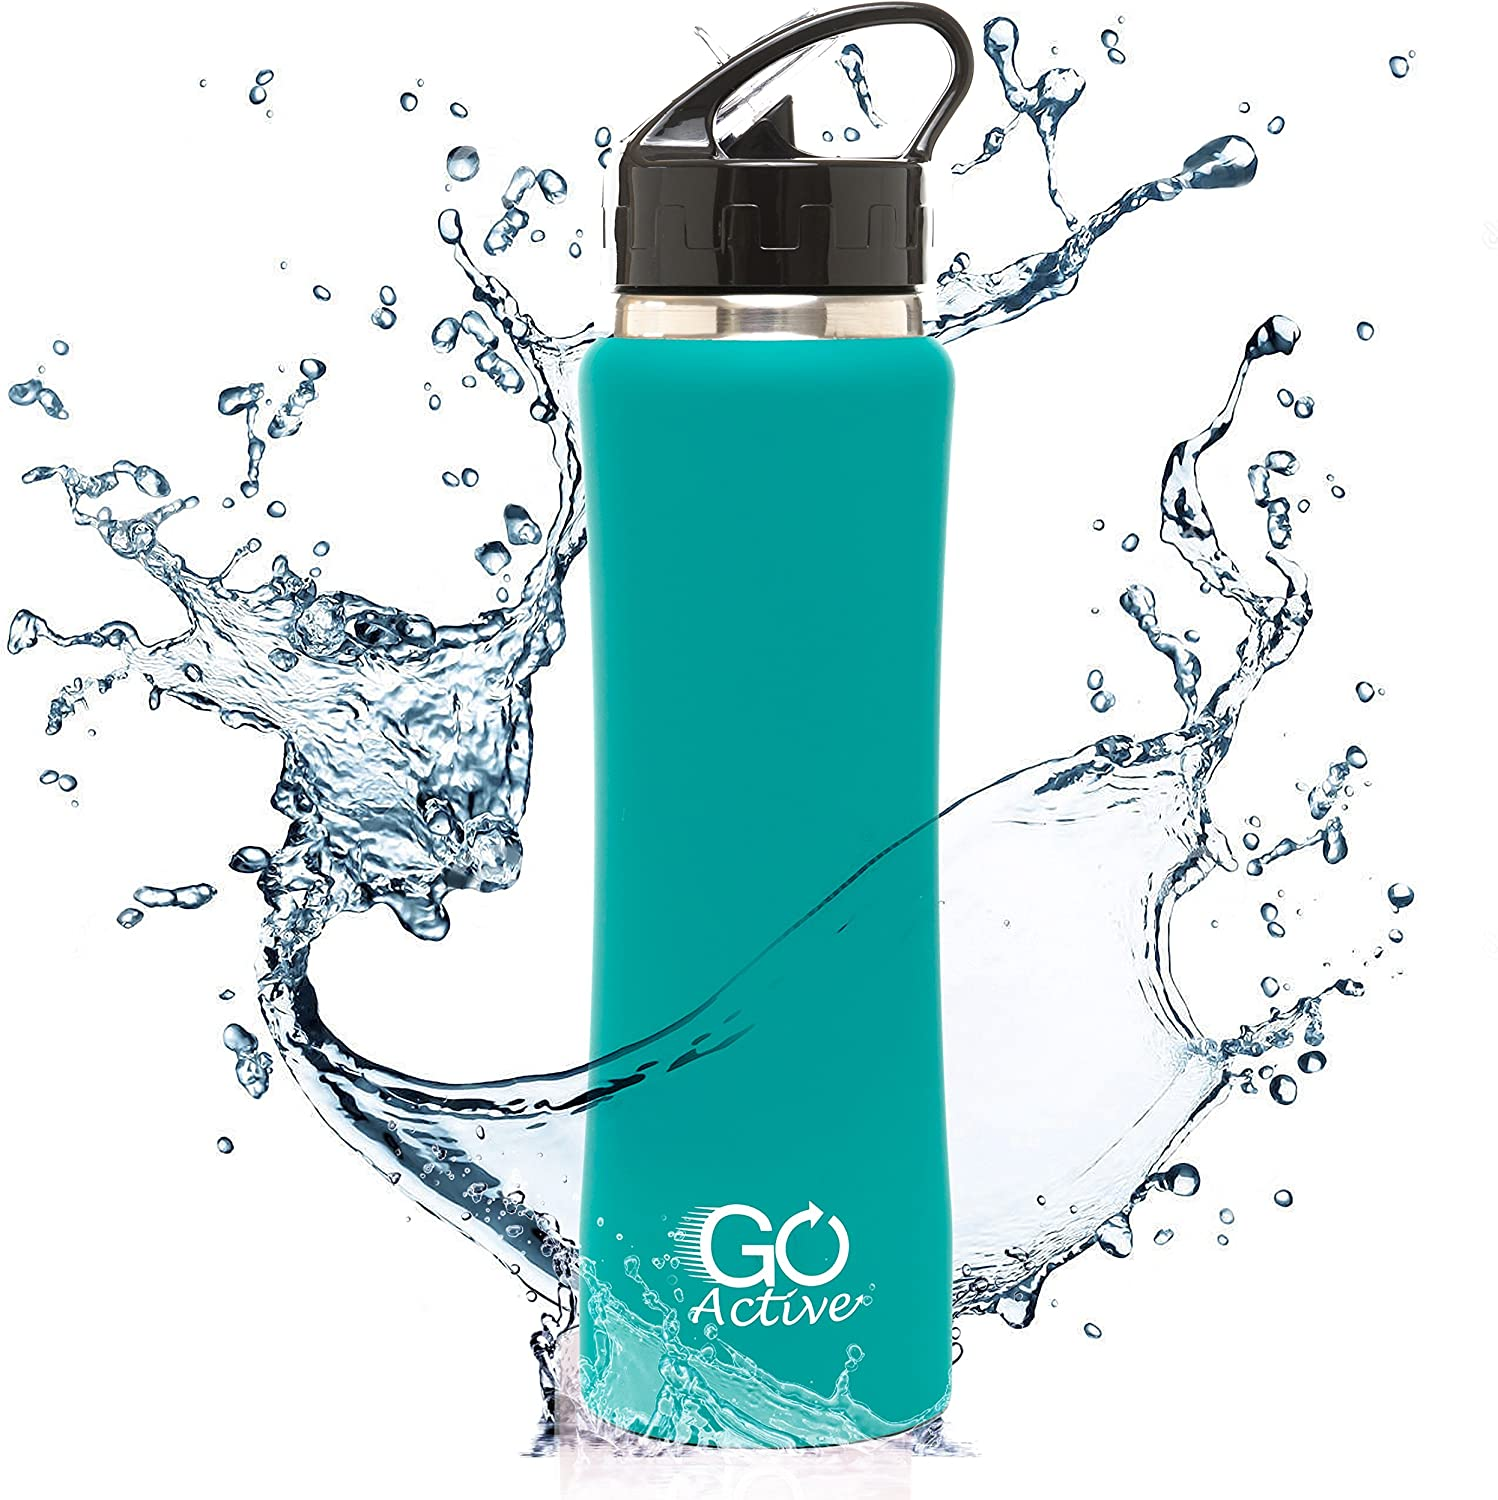 GO Active Insulated Water Bottle